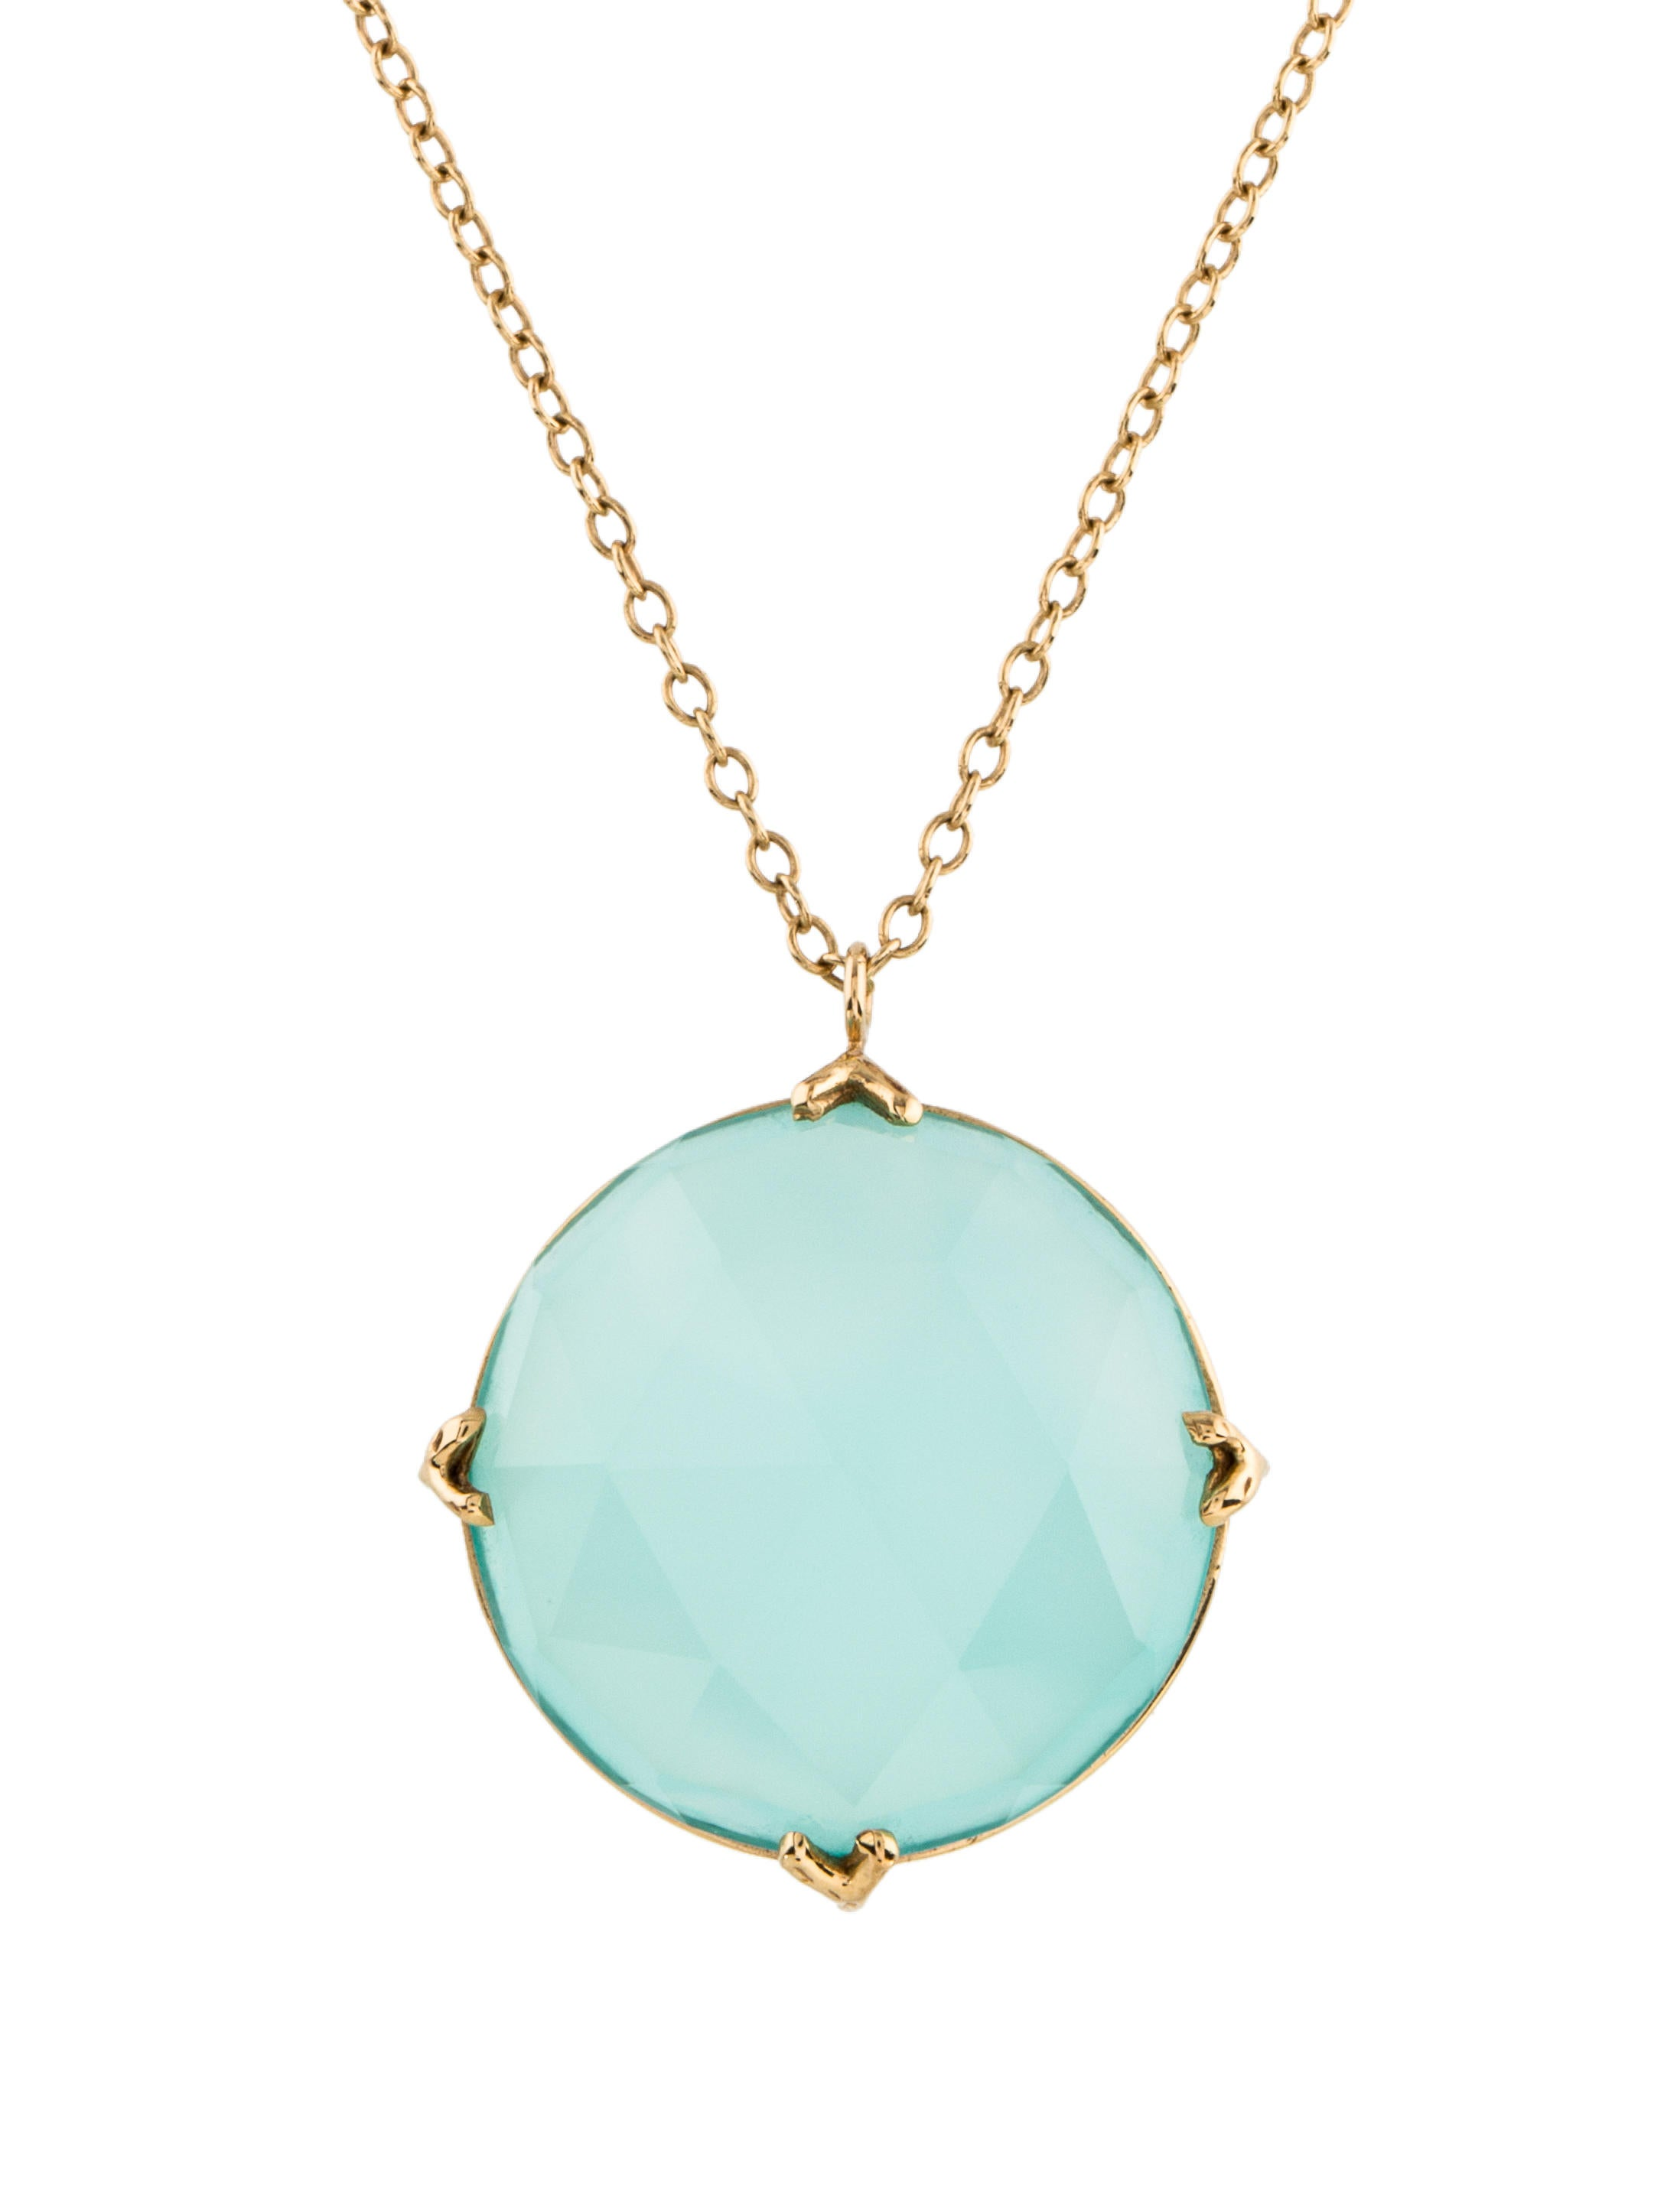 aqua brooklyn gold chalcedony auree necklace jewellery pendant vermeil and